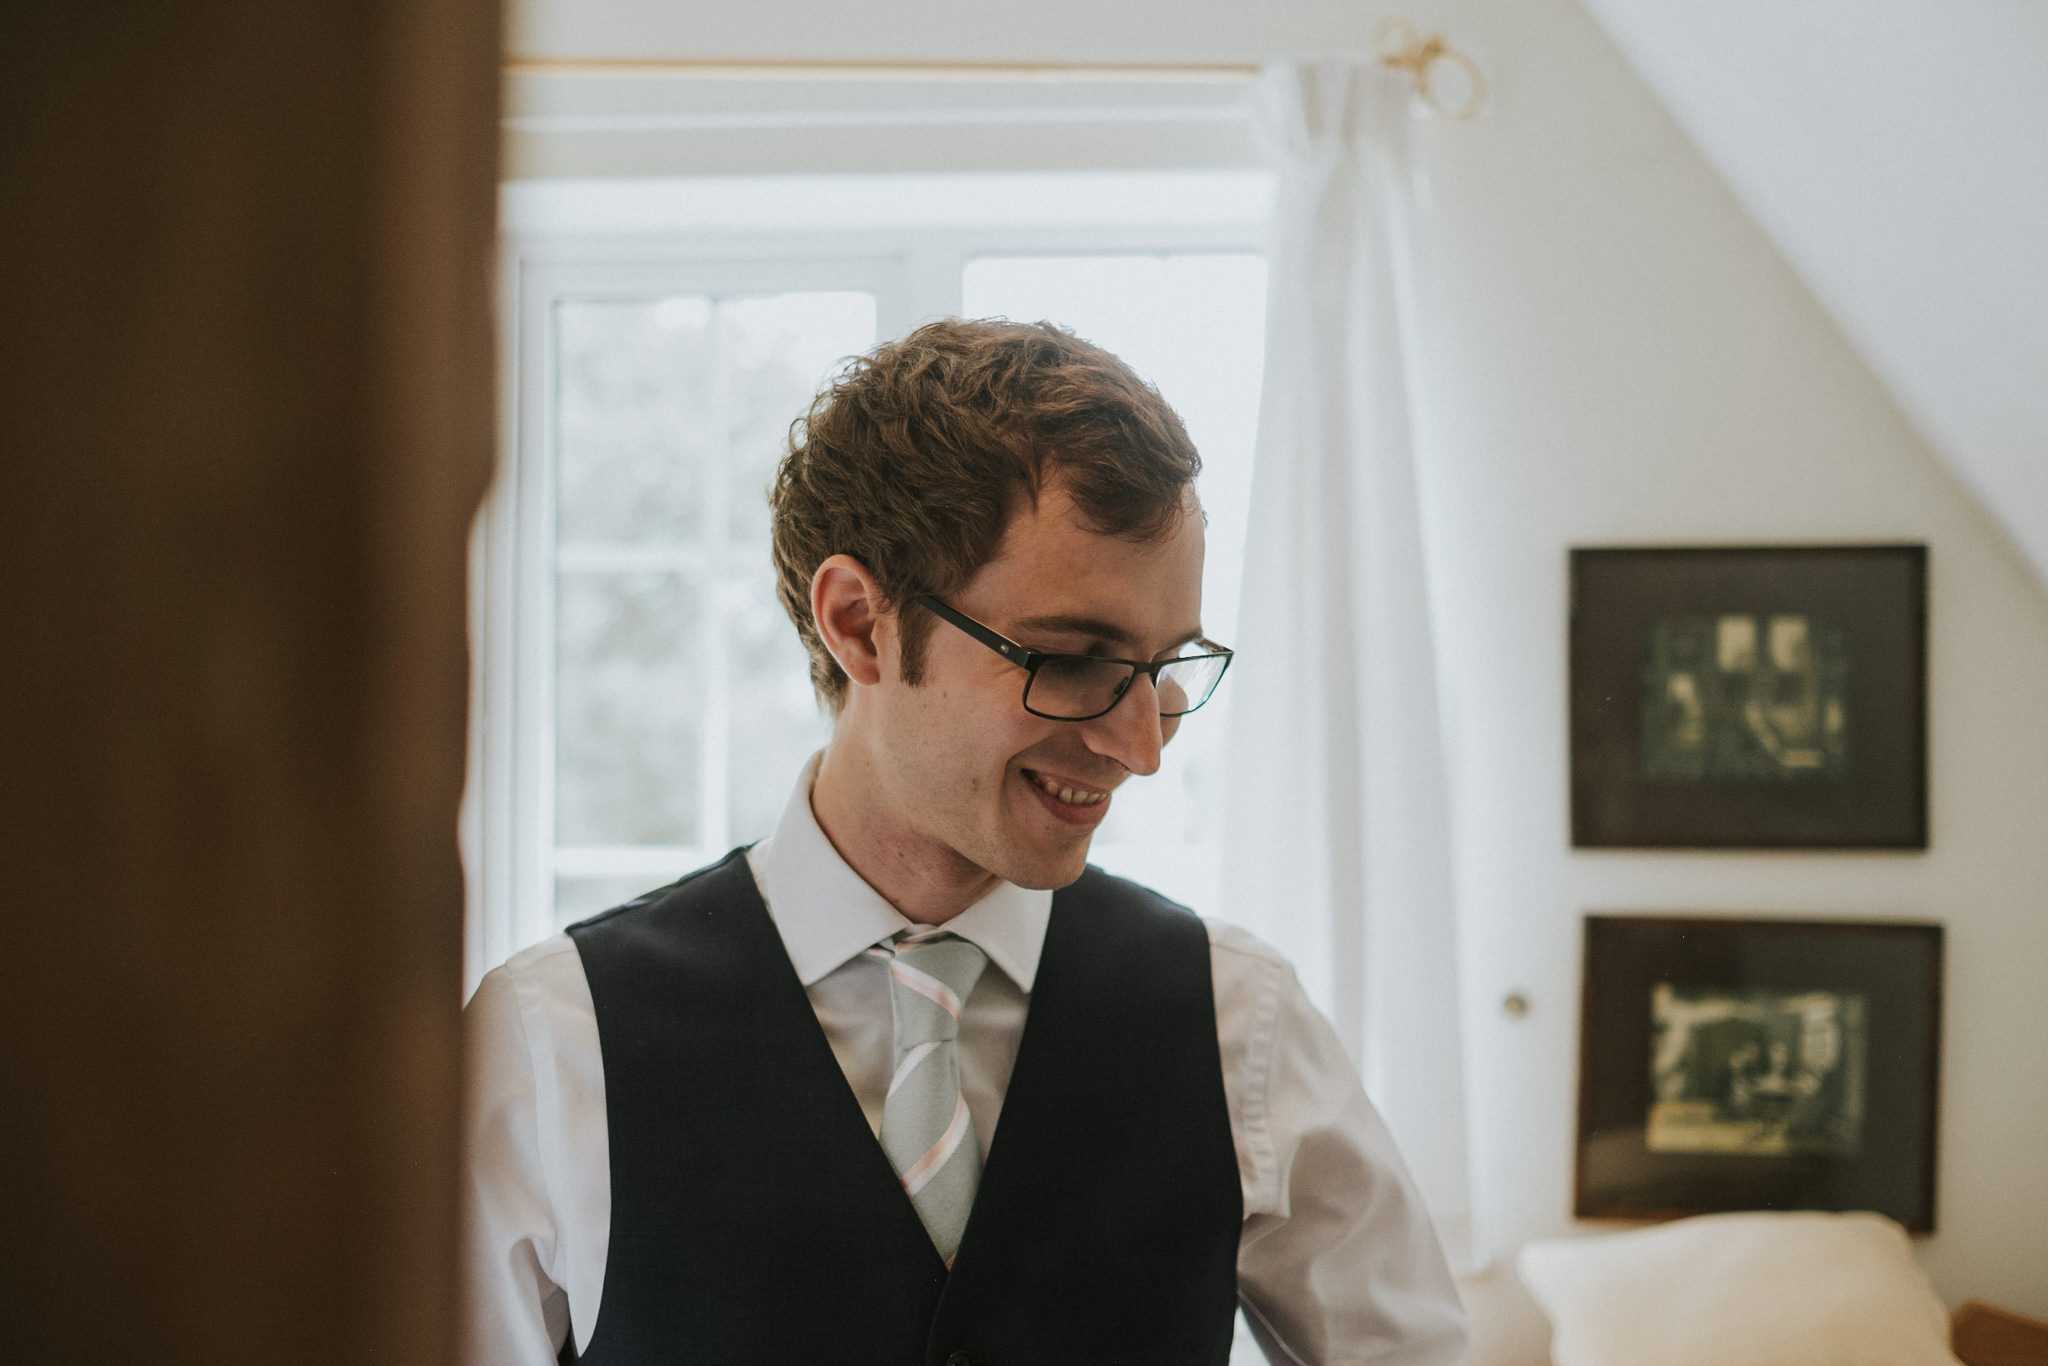 berkshire_wedding_photographer_emma_simon (27 of 327).jpg